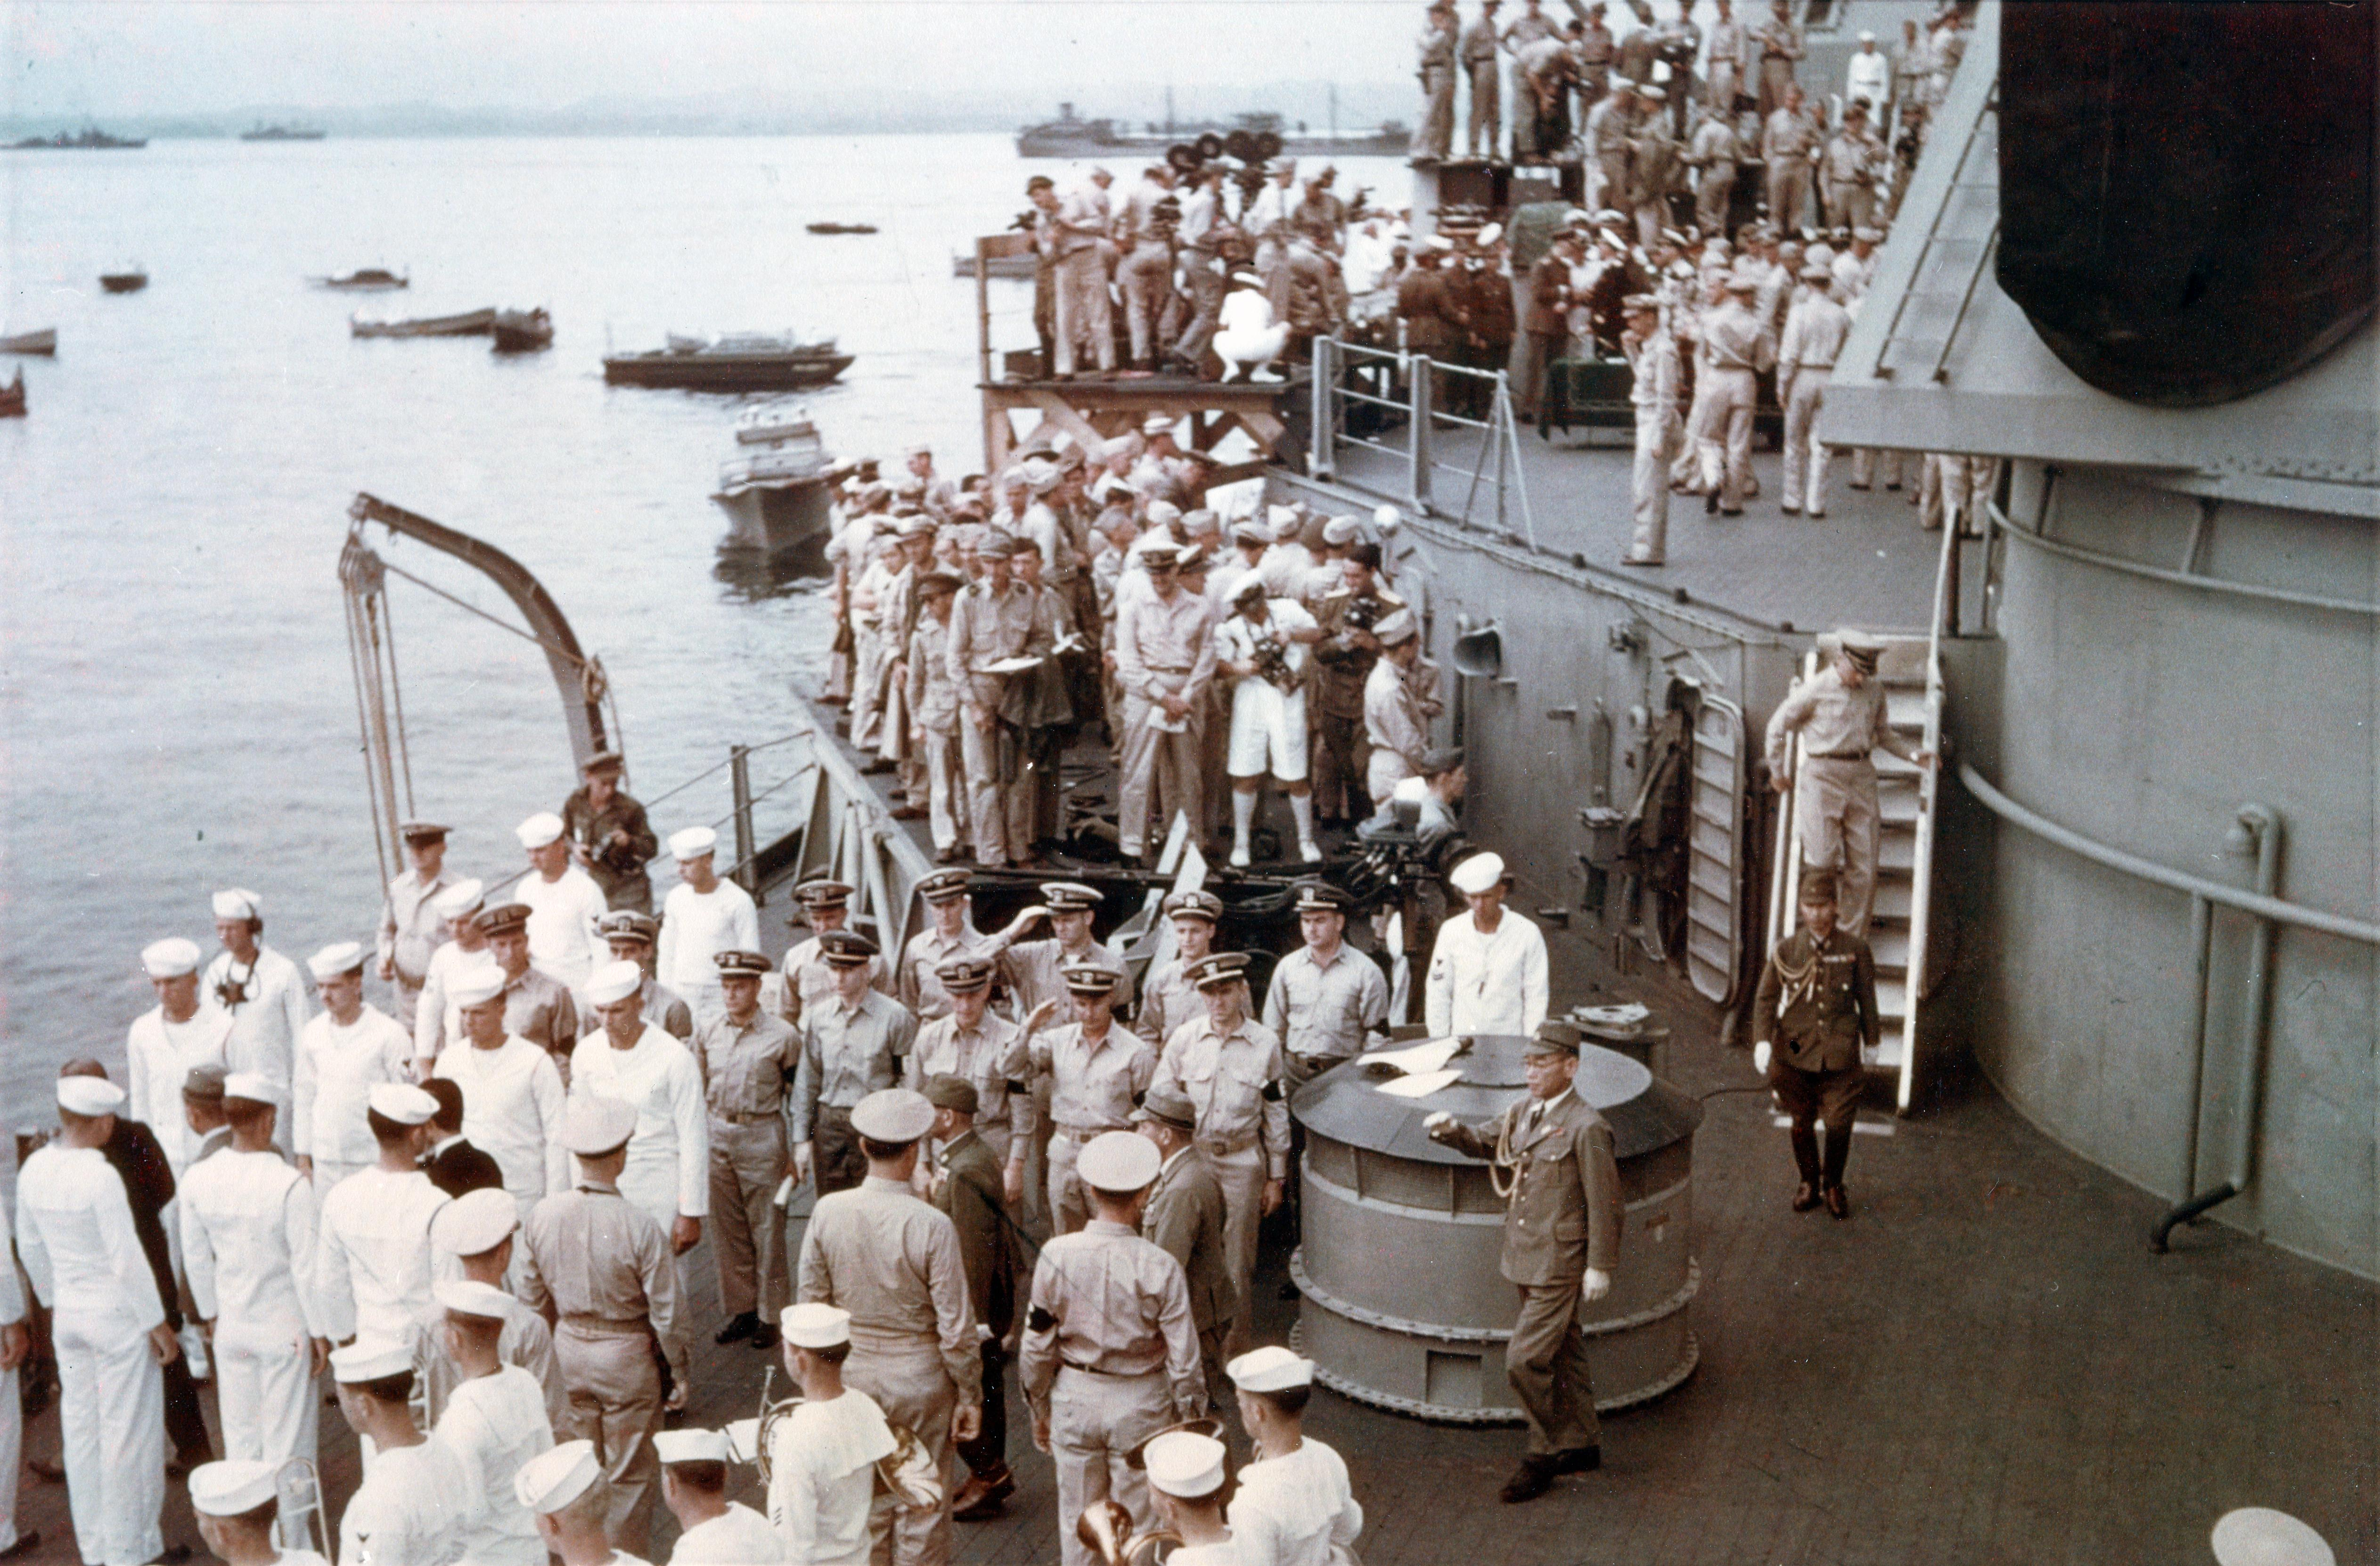 Photo Japanese Delegation Leaving The Uss Missouri In Tokyo Bay Japan After Signing The